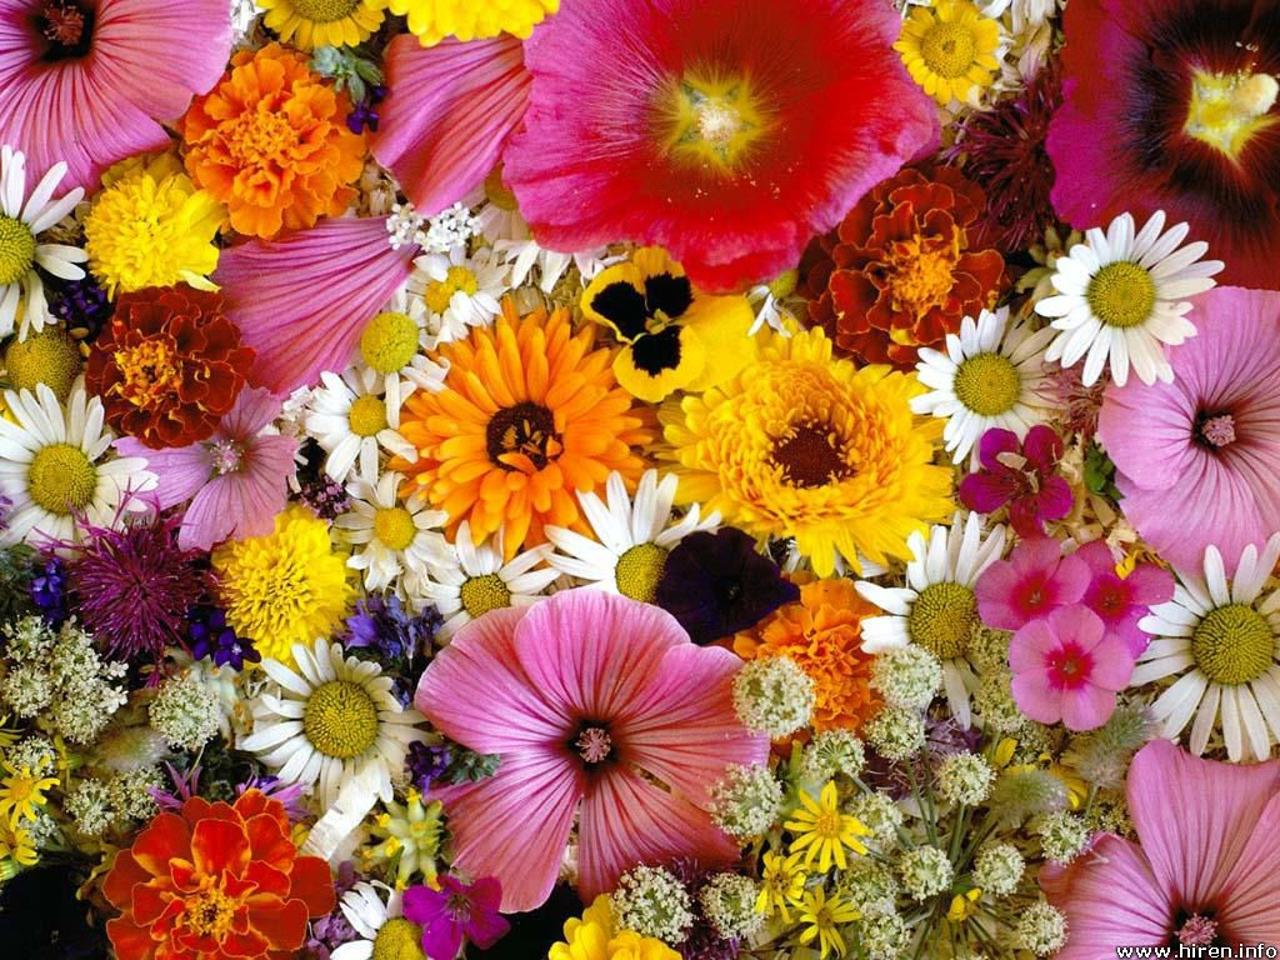 Flowers for flower lovers beautiful flowers wallpapers Beautiful flowers photos